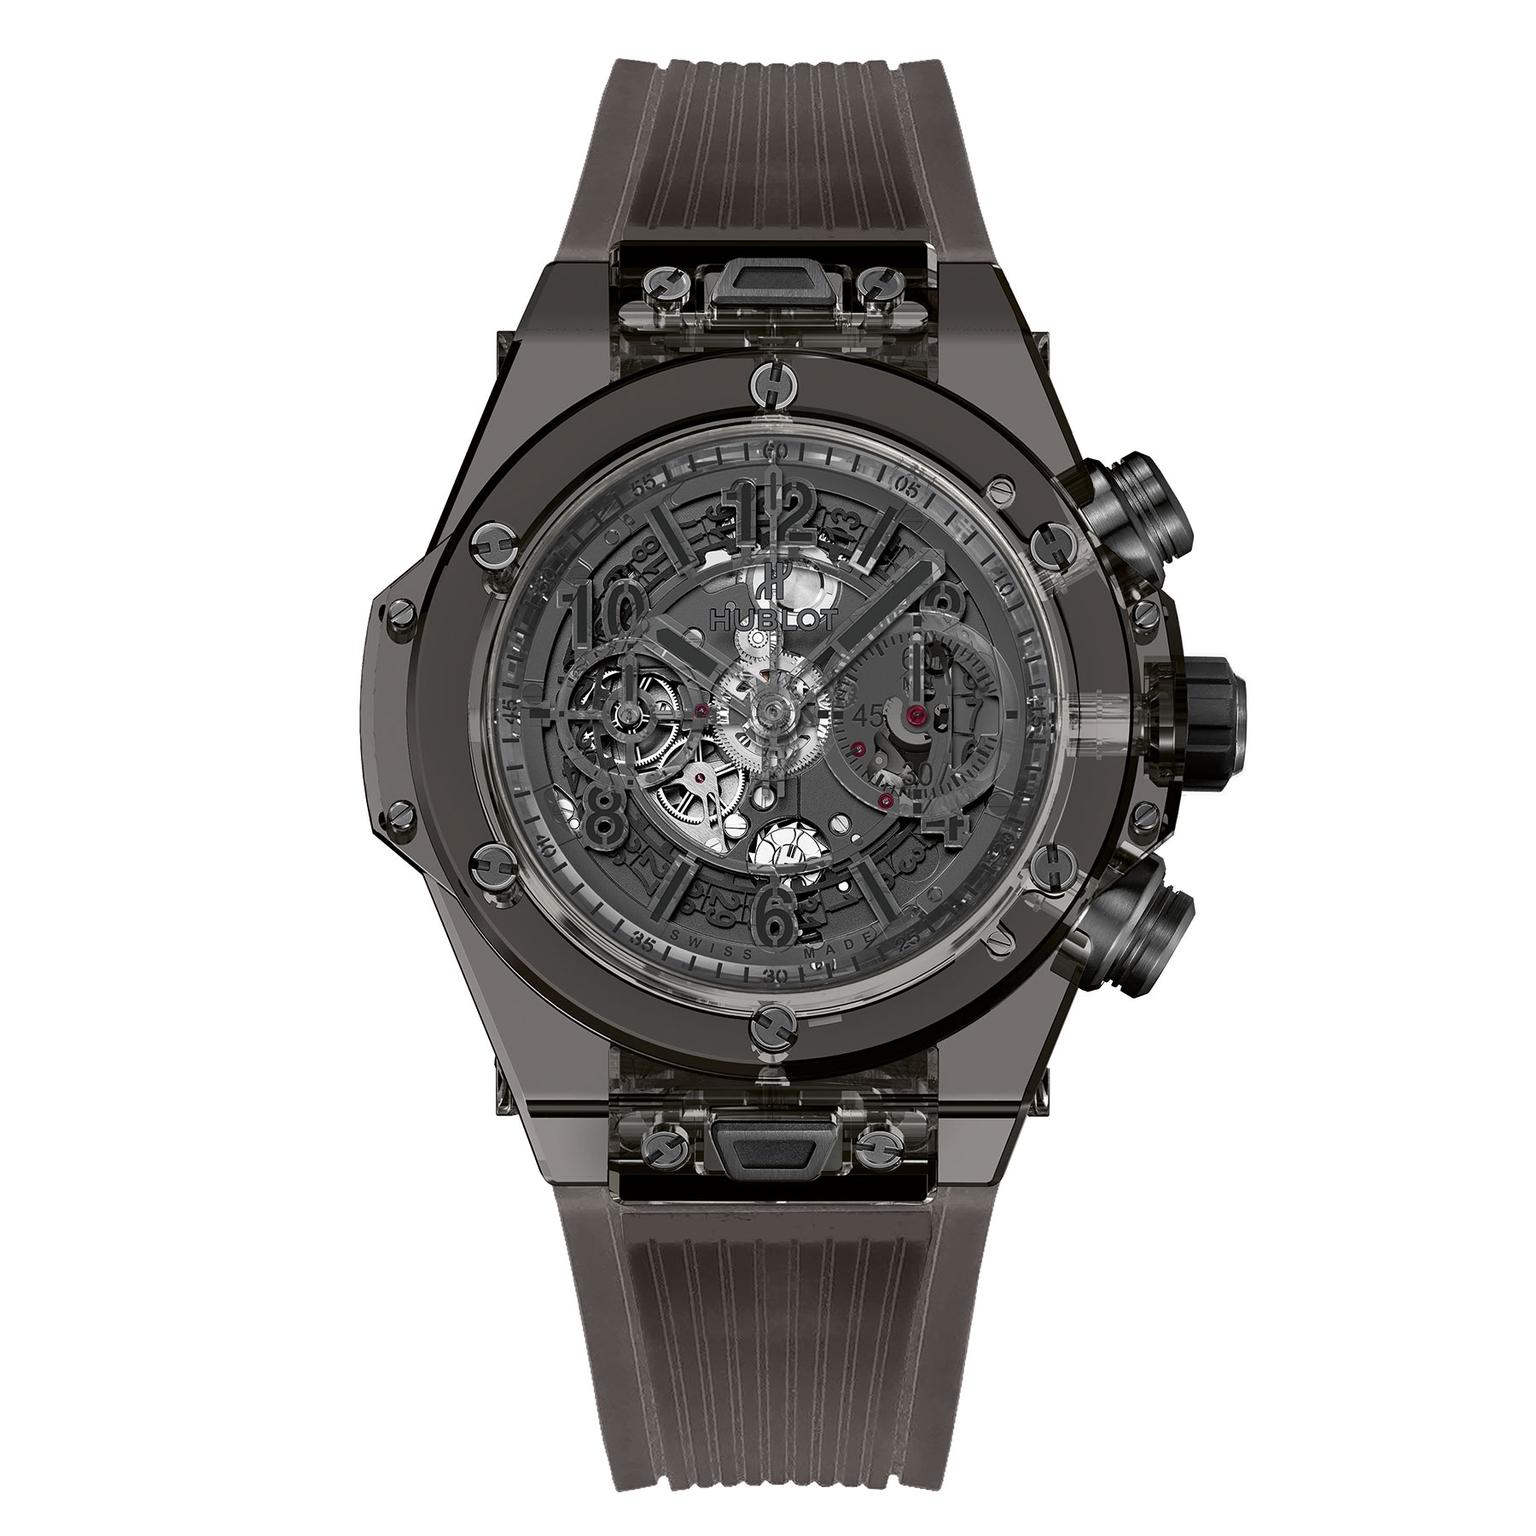 Hublot Big Bang Unico Sapphire All Black watch